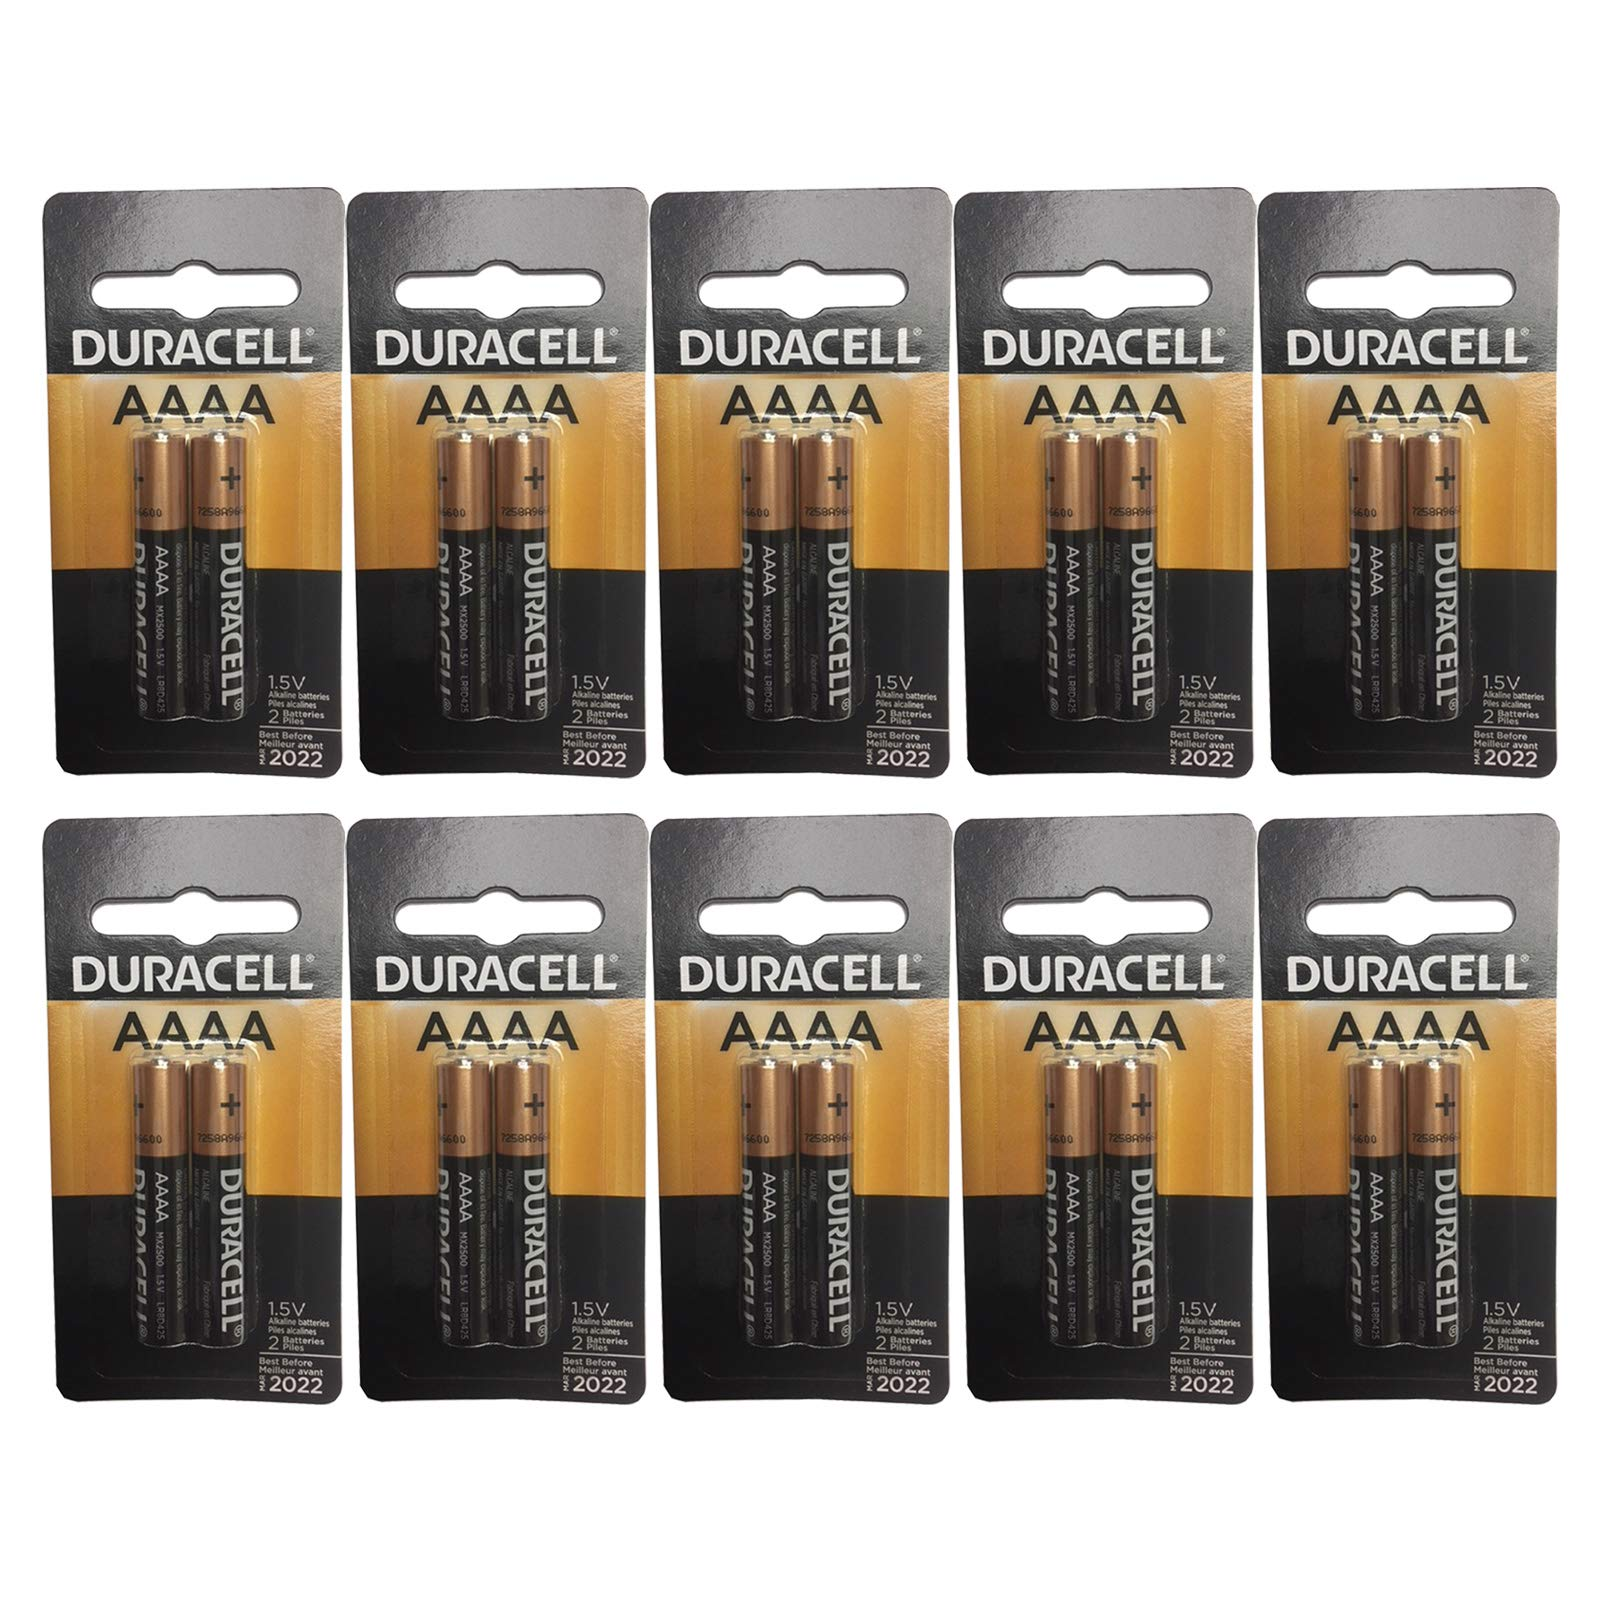 10x Duracell Ultra 1.5V AAAA Alkaline Batteries Glucose Blood Pressure Monitors